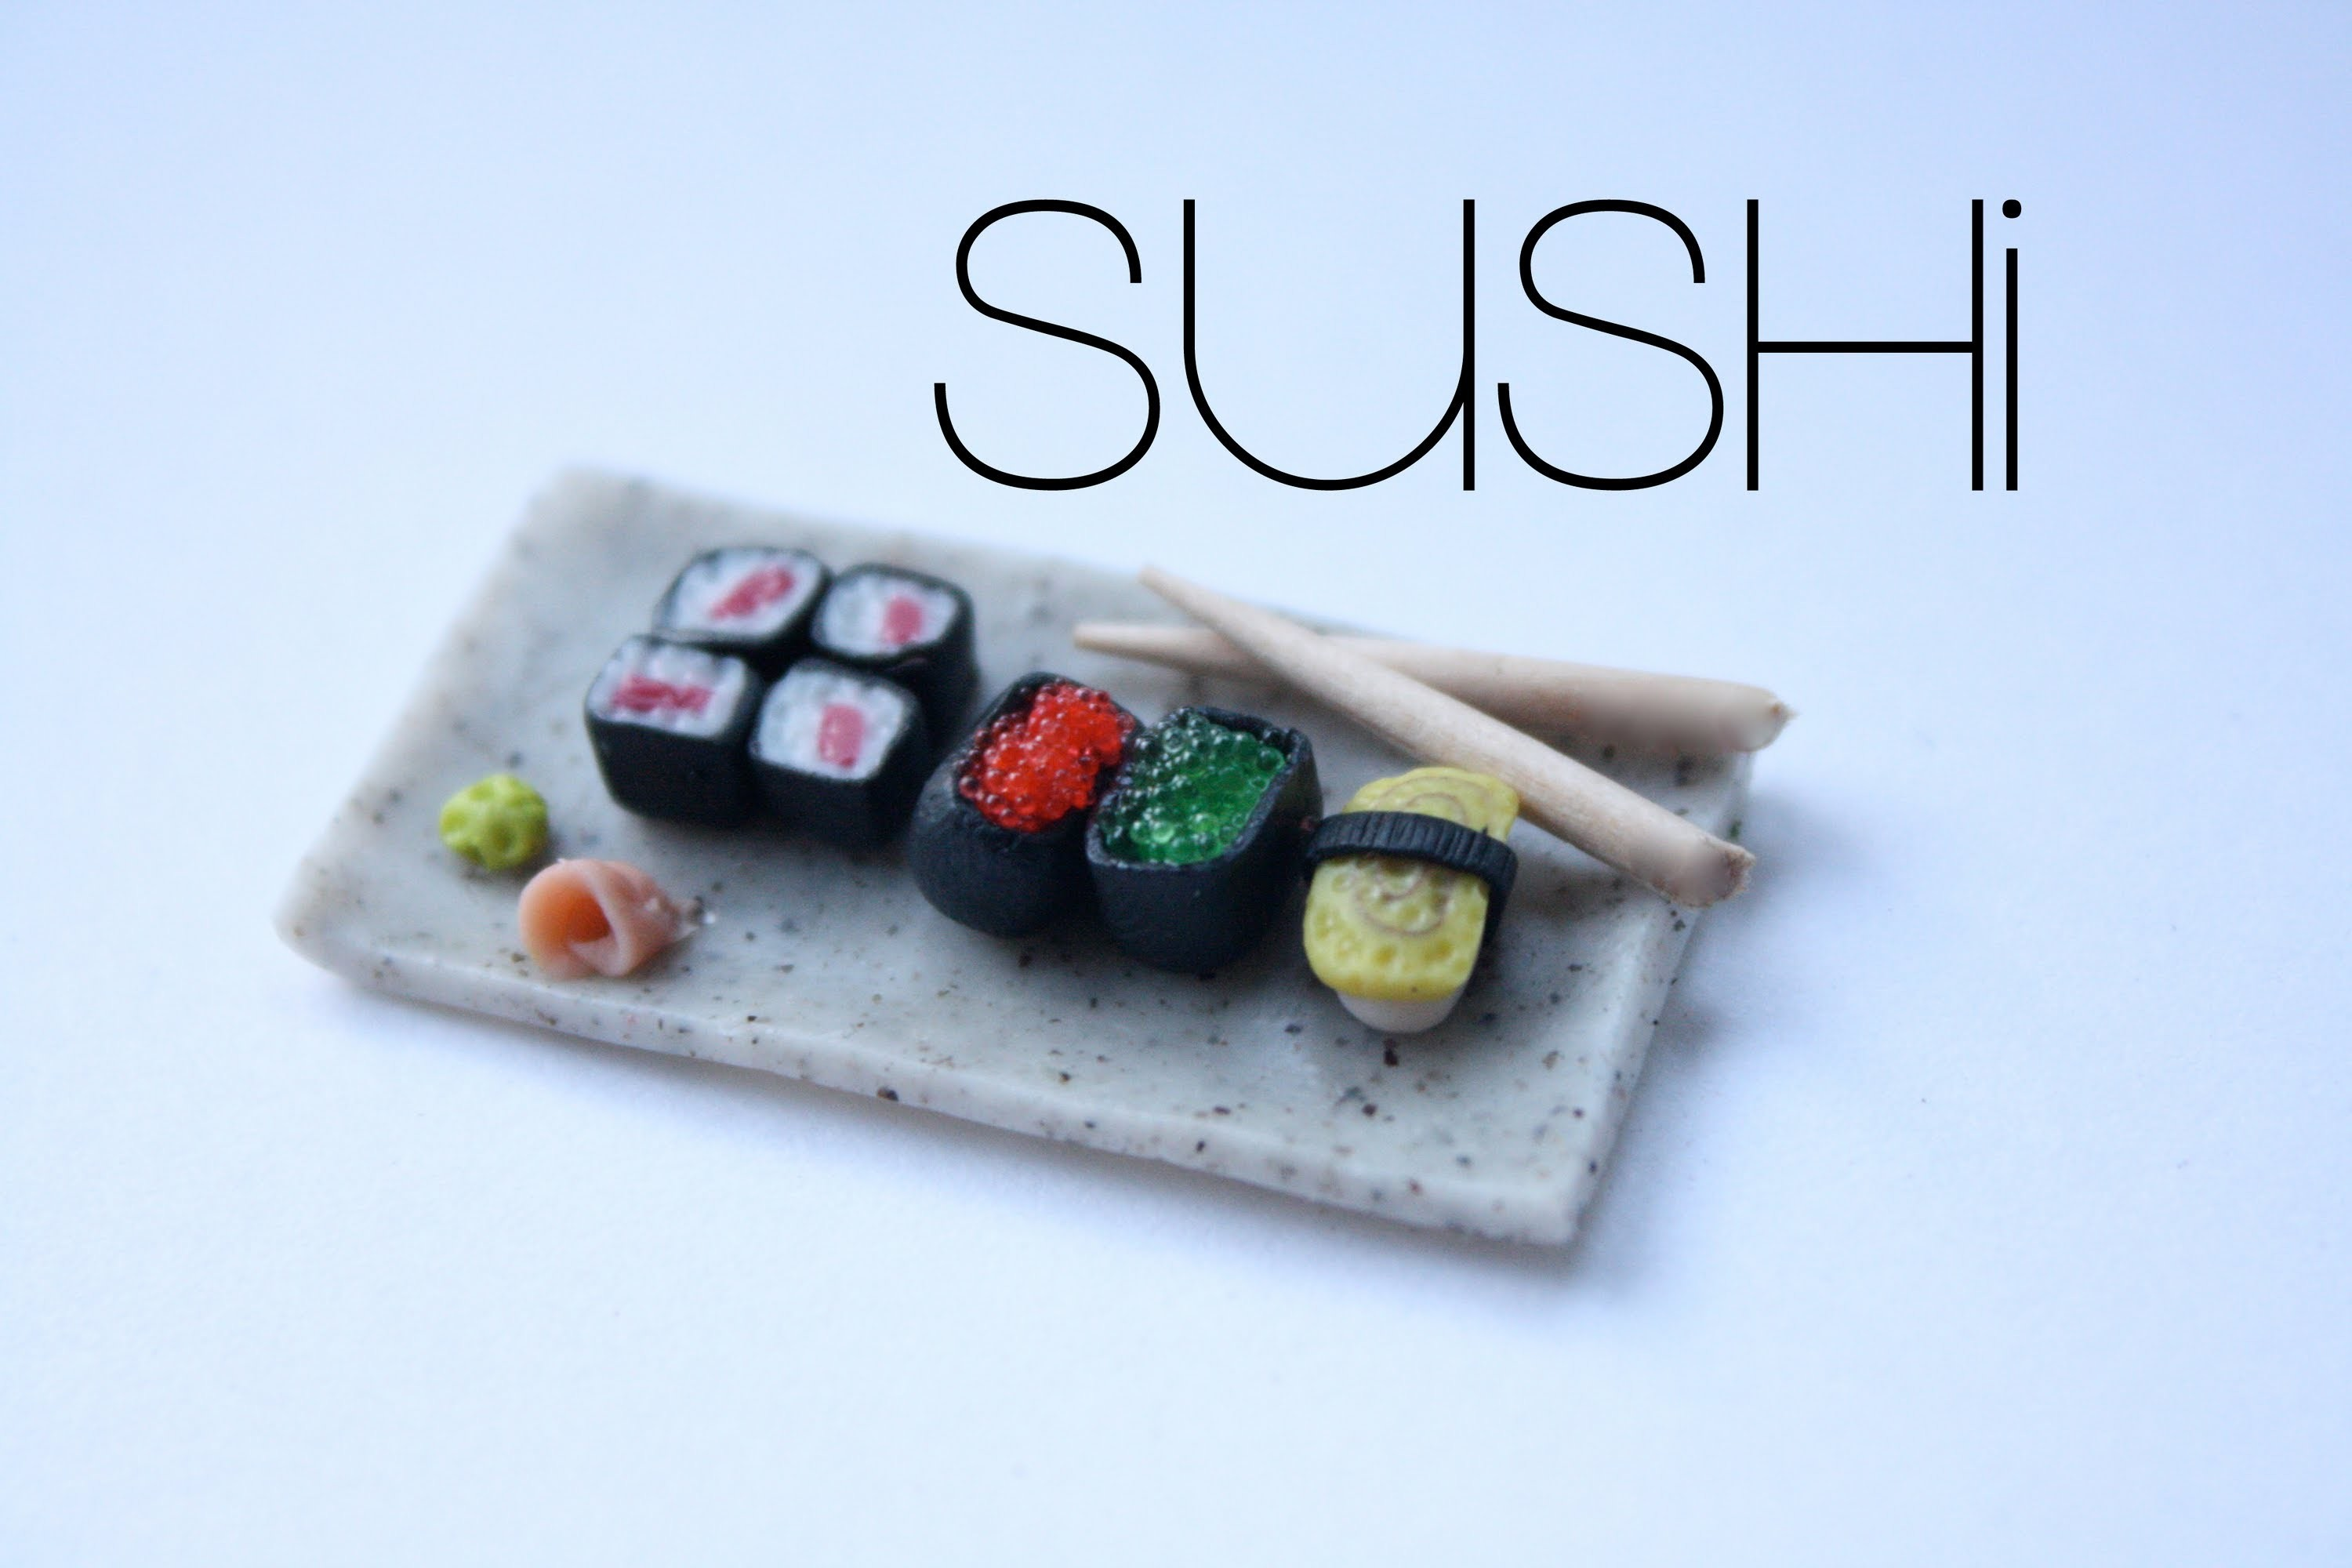 Sushi - Polymer Clay Food Tutorial & Miniature Plate